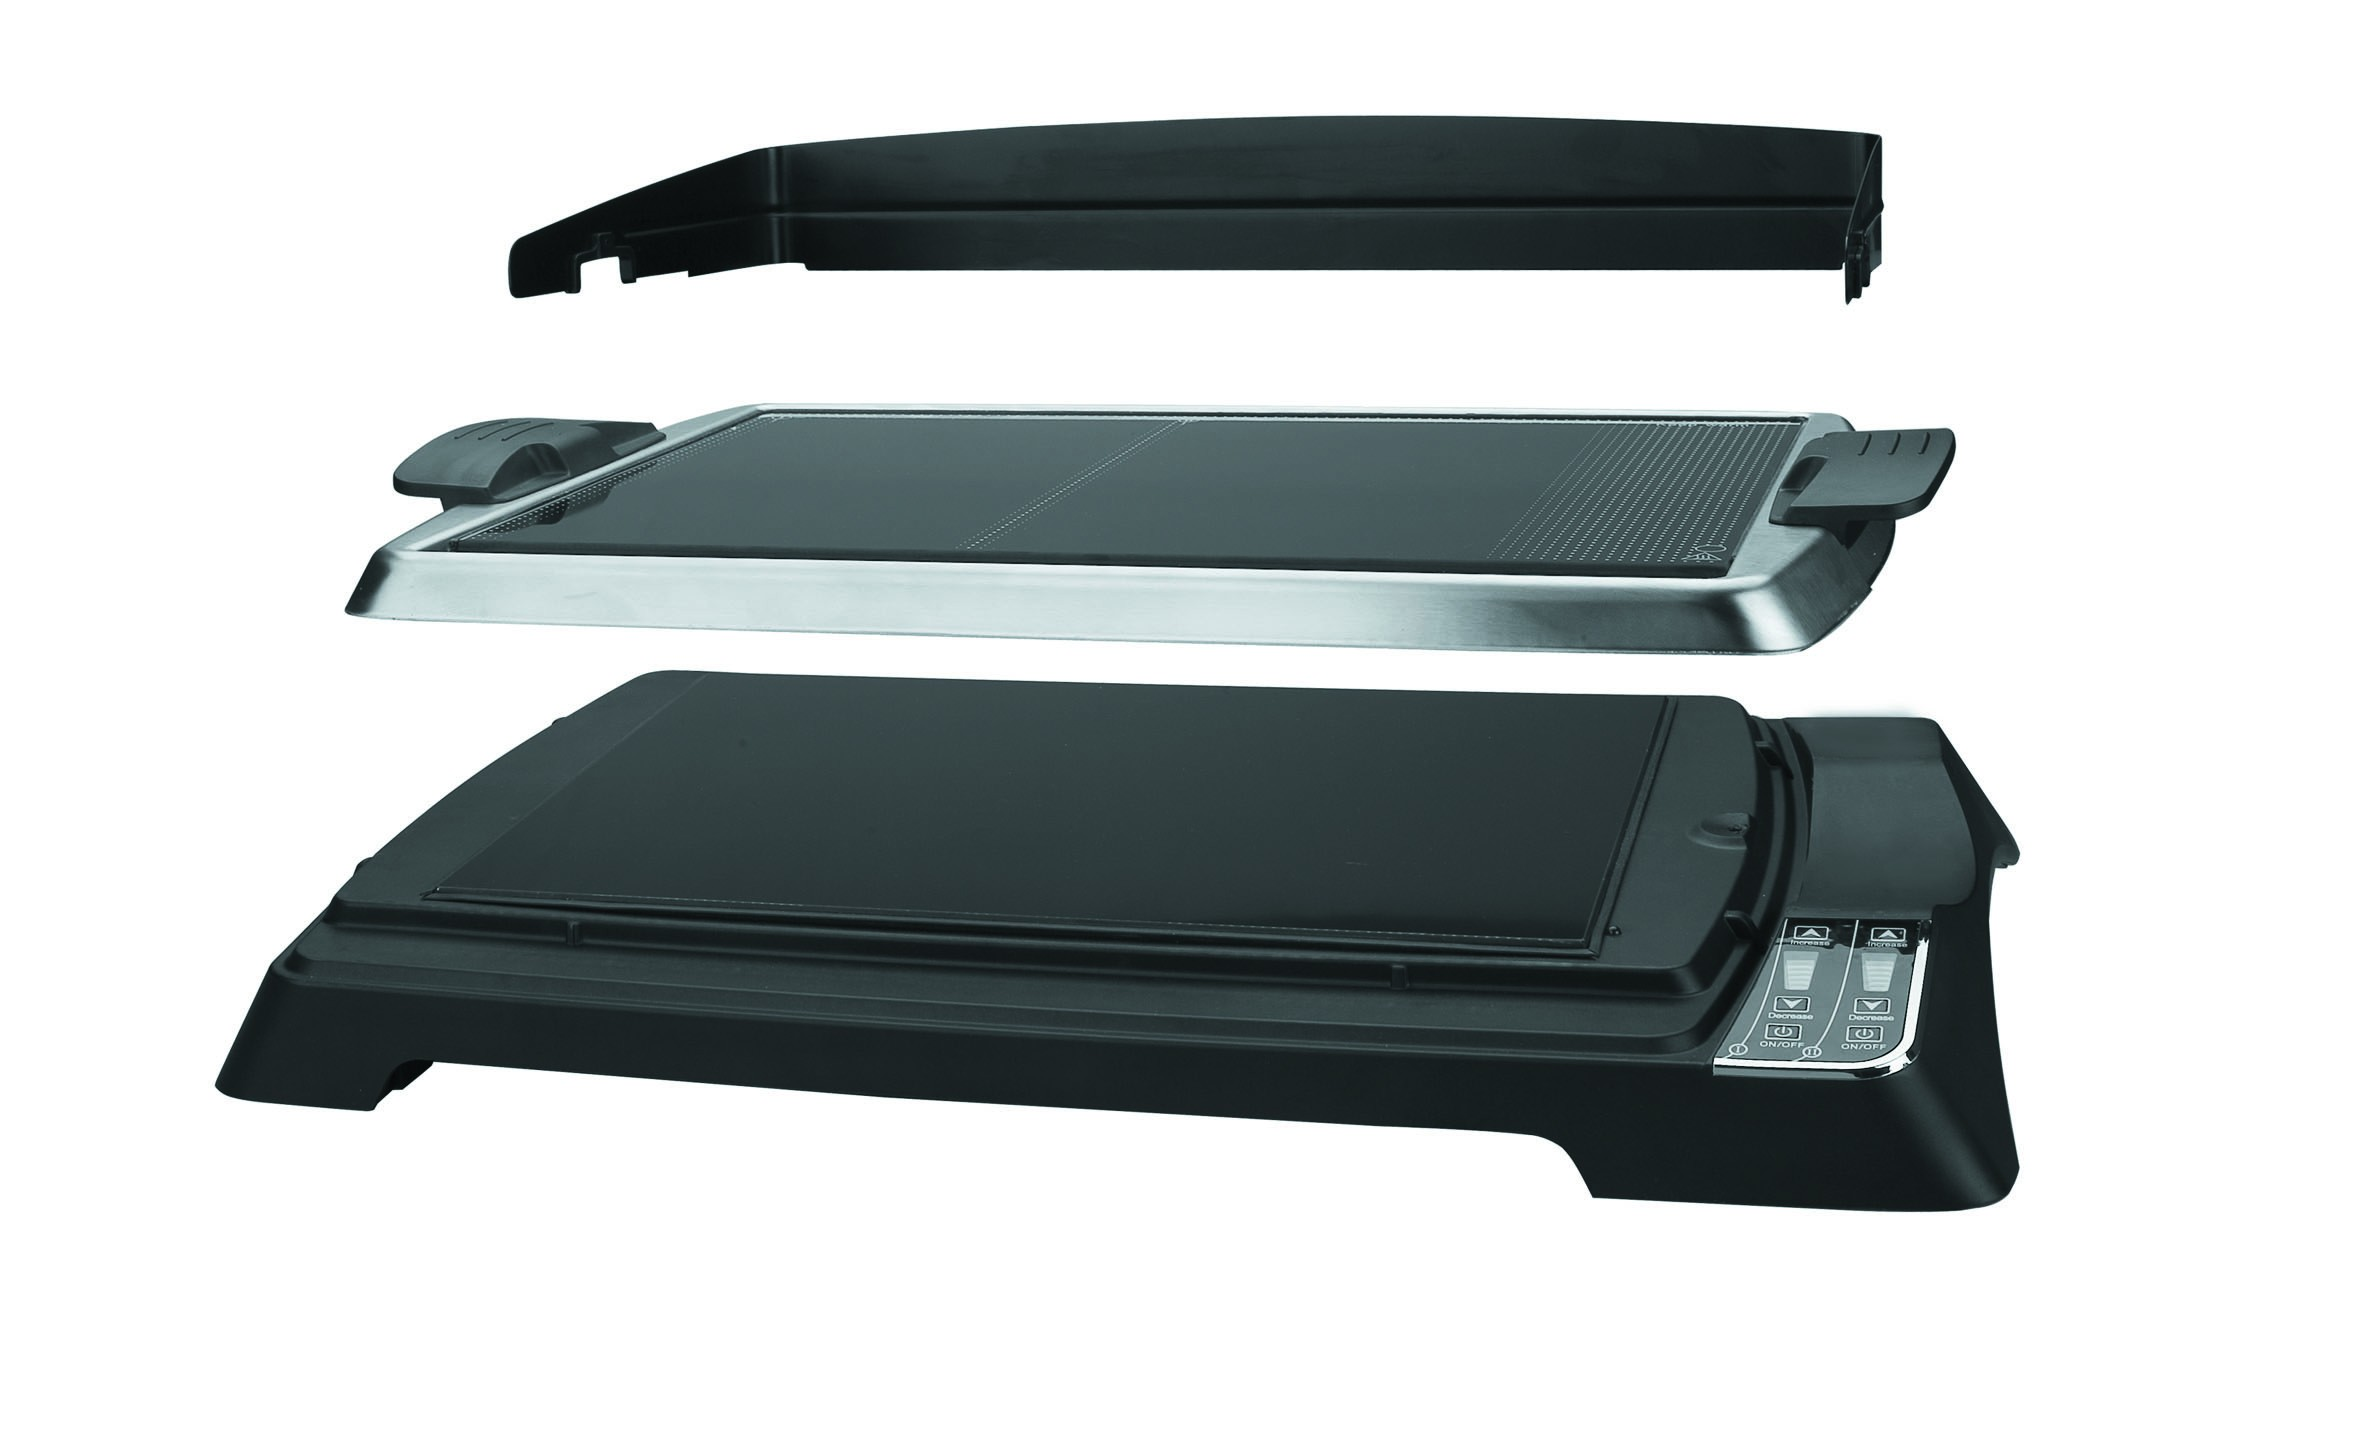 Plancha Fonte Aluminium Plancha Induction